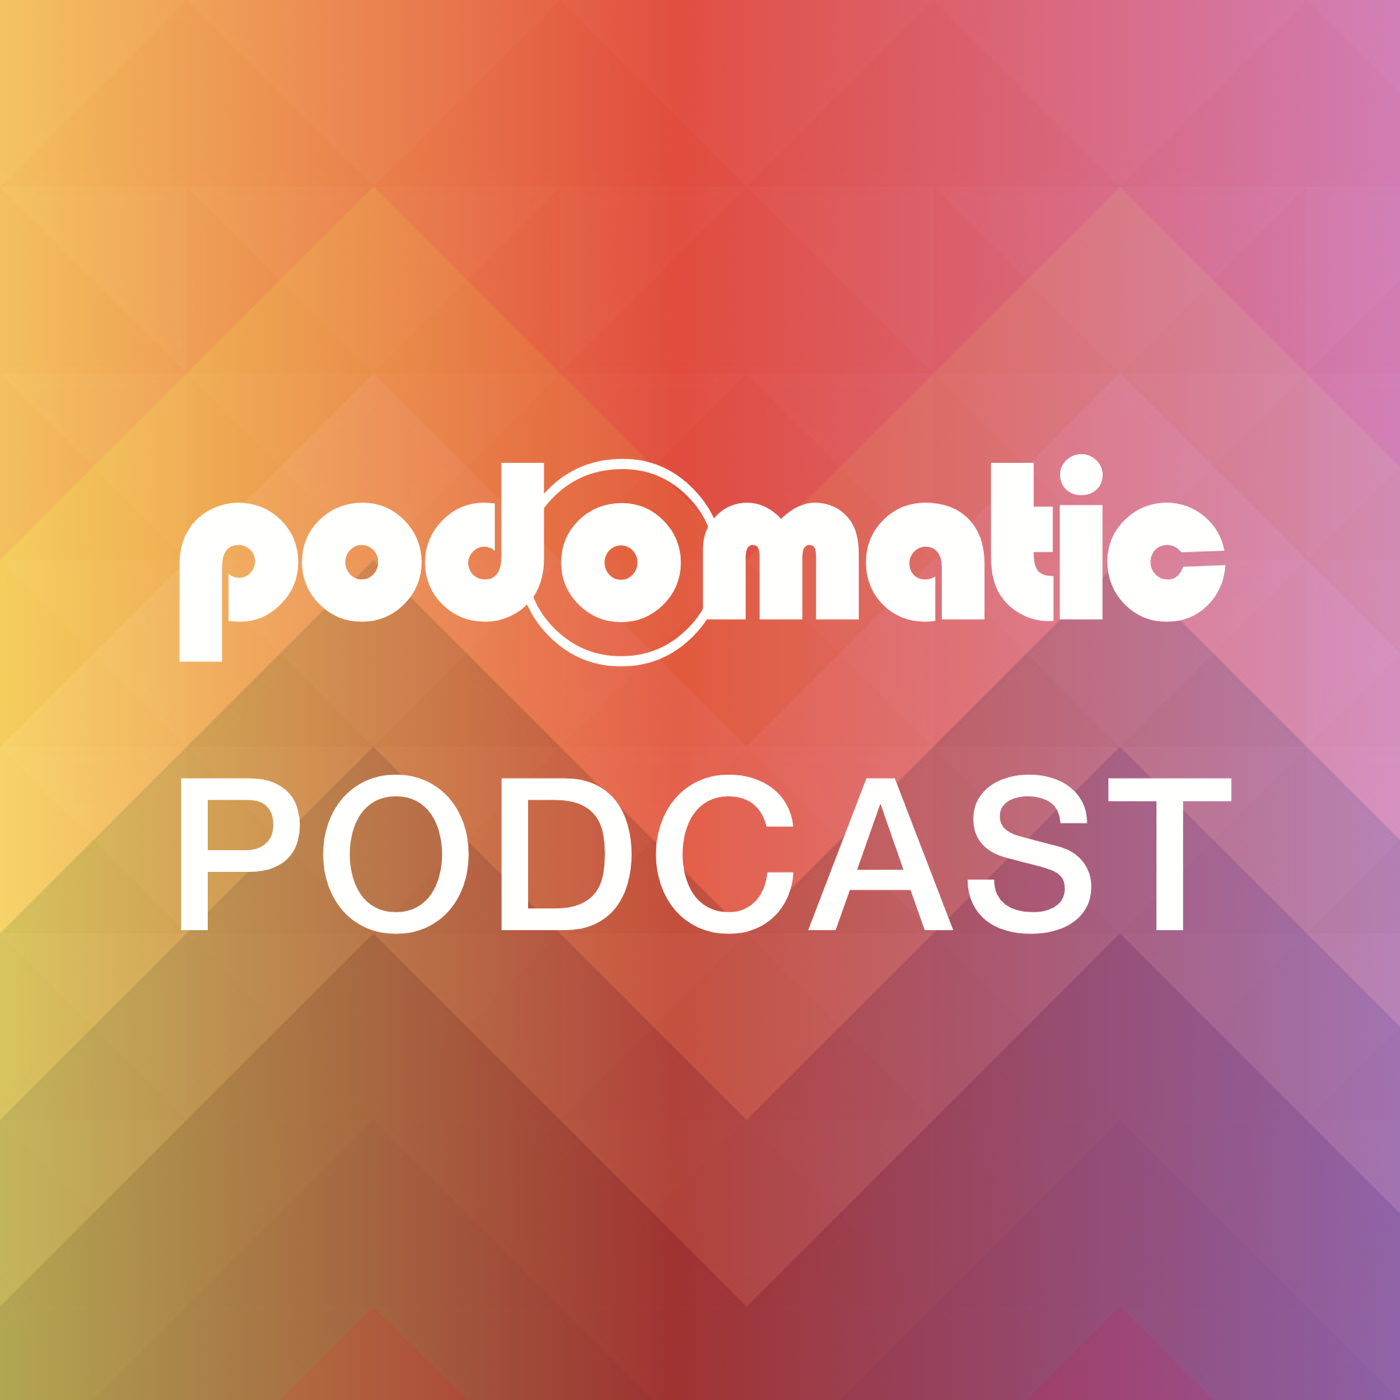 Paolo Aghemo's Podcast